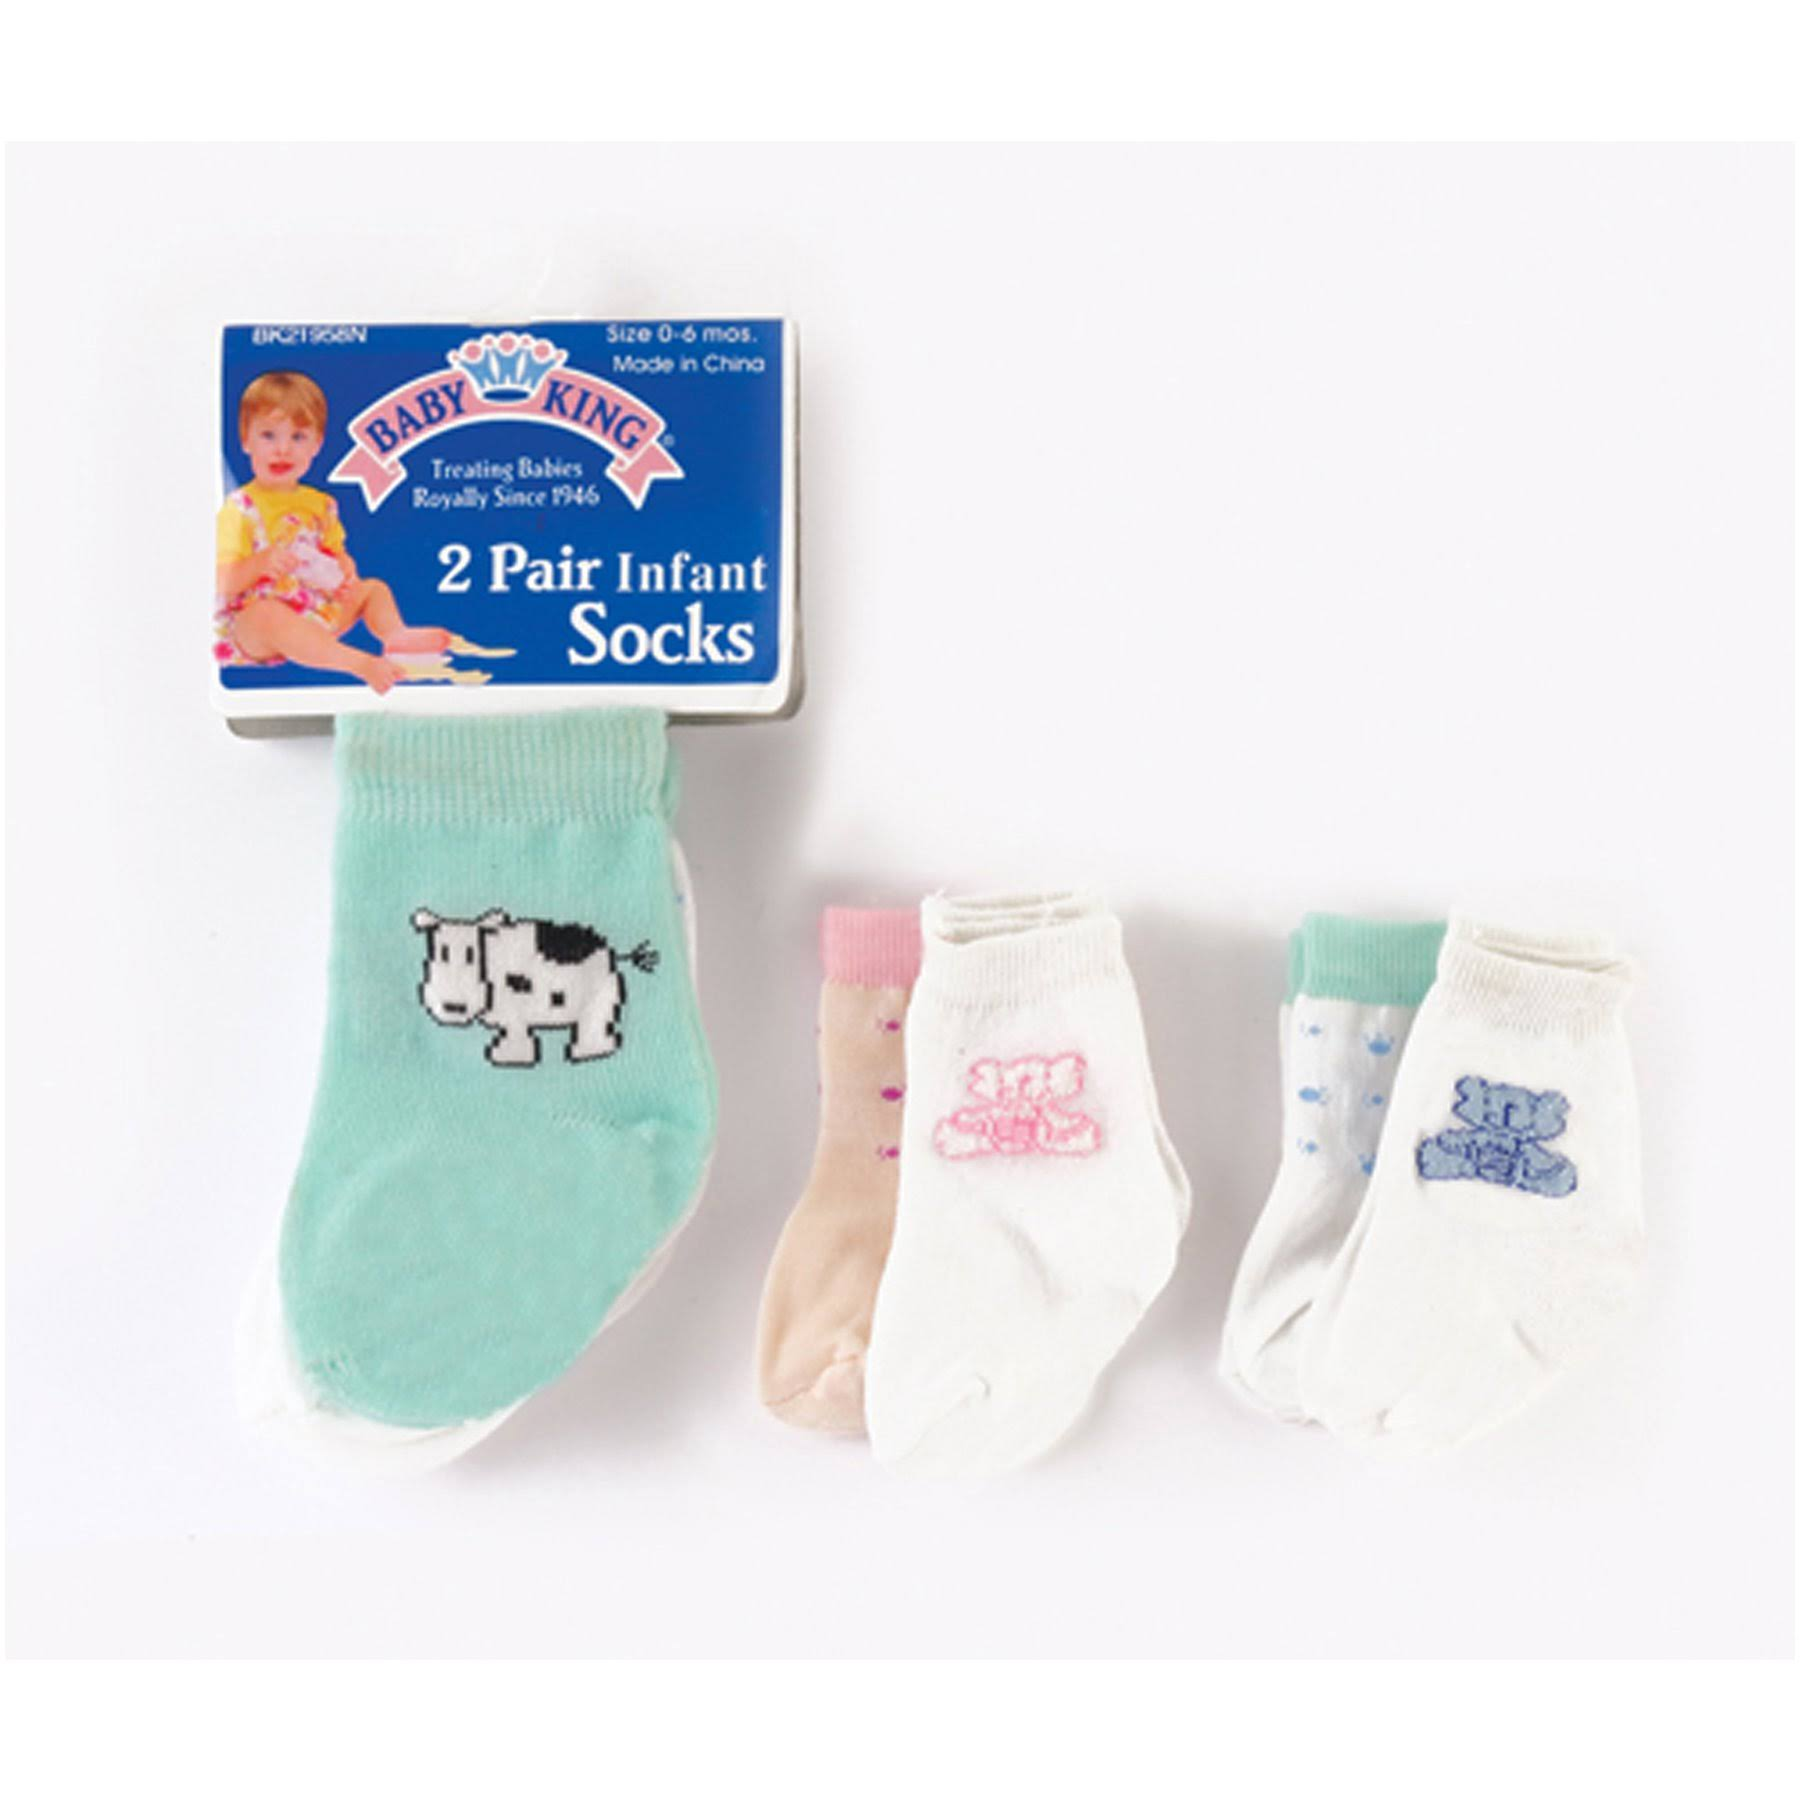 Baby King Infant Socks, Asst - 1 Package